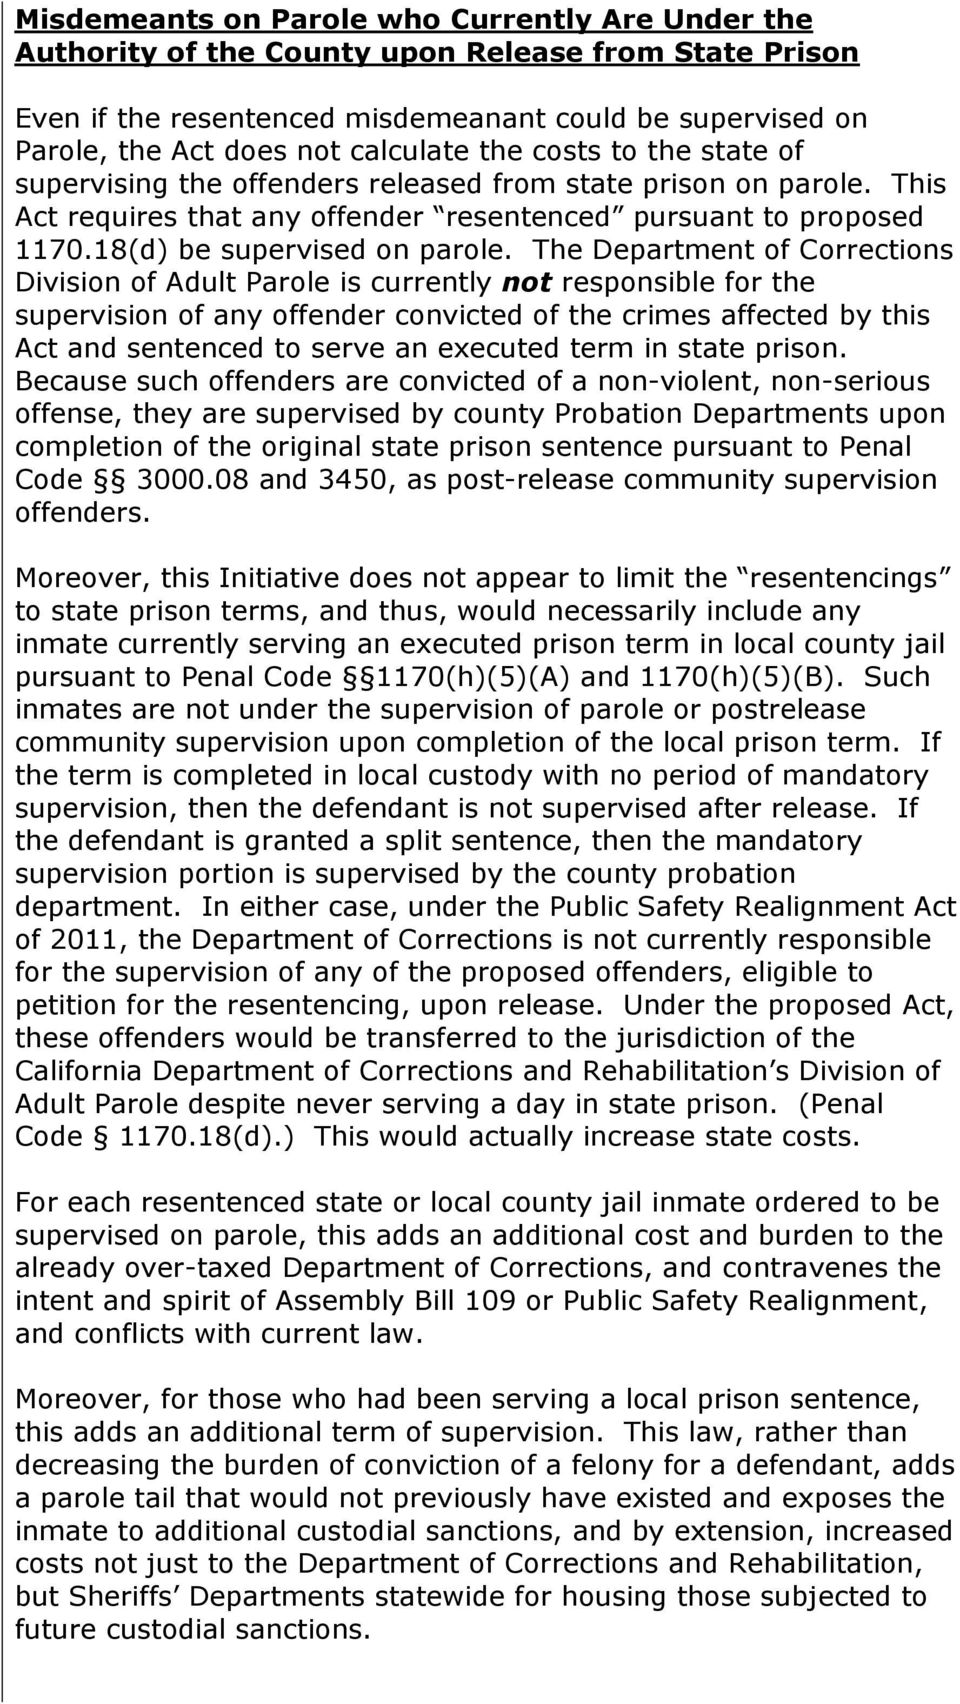 The Department of Corrections Division of Adult Parole is currently not responsible for the supervision of any offender convicted of the crimes affected by this Act and sentenced to serve an executed